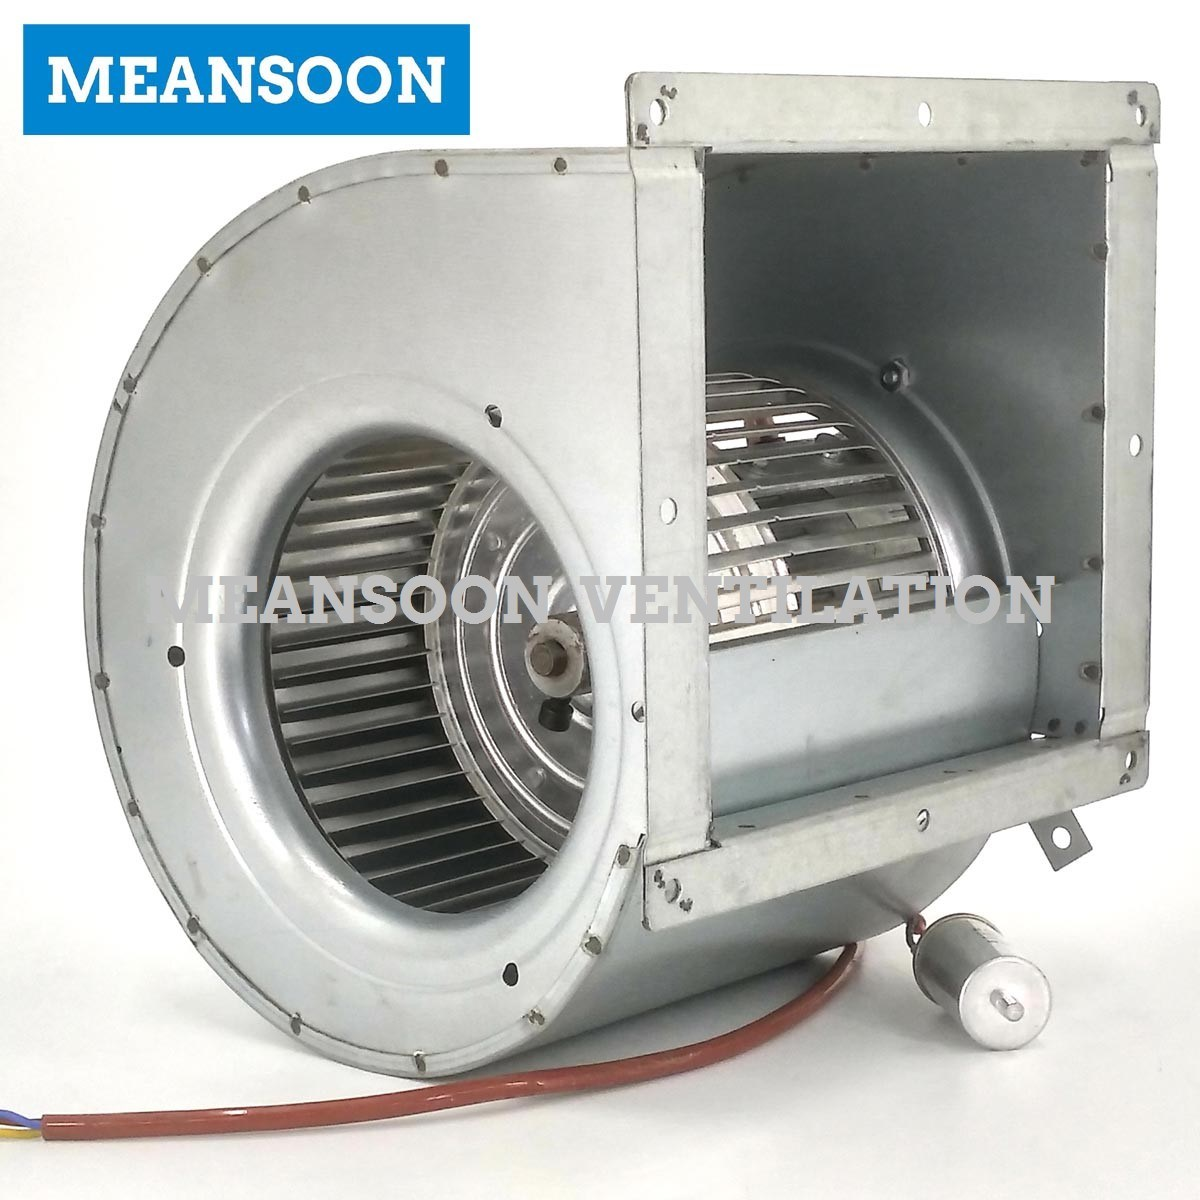 9-9 Double Inlet Centrifugal Fan for Air Conditioning Exhaust Ventilation